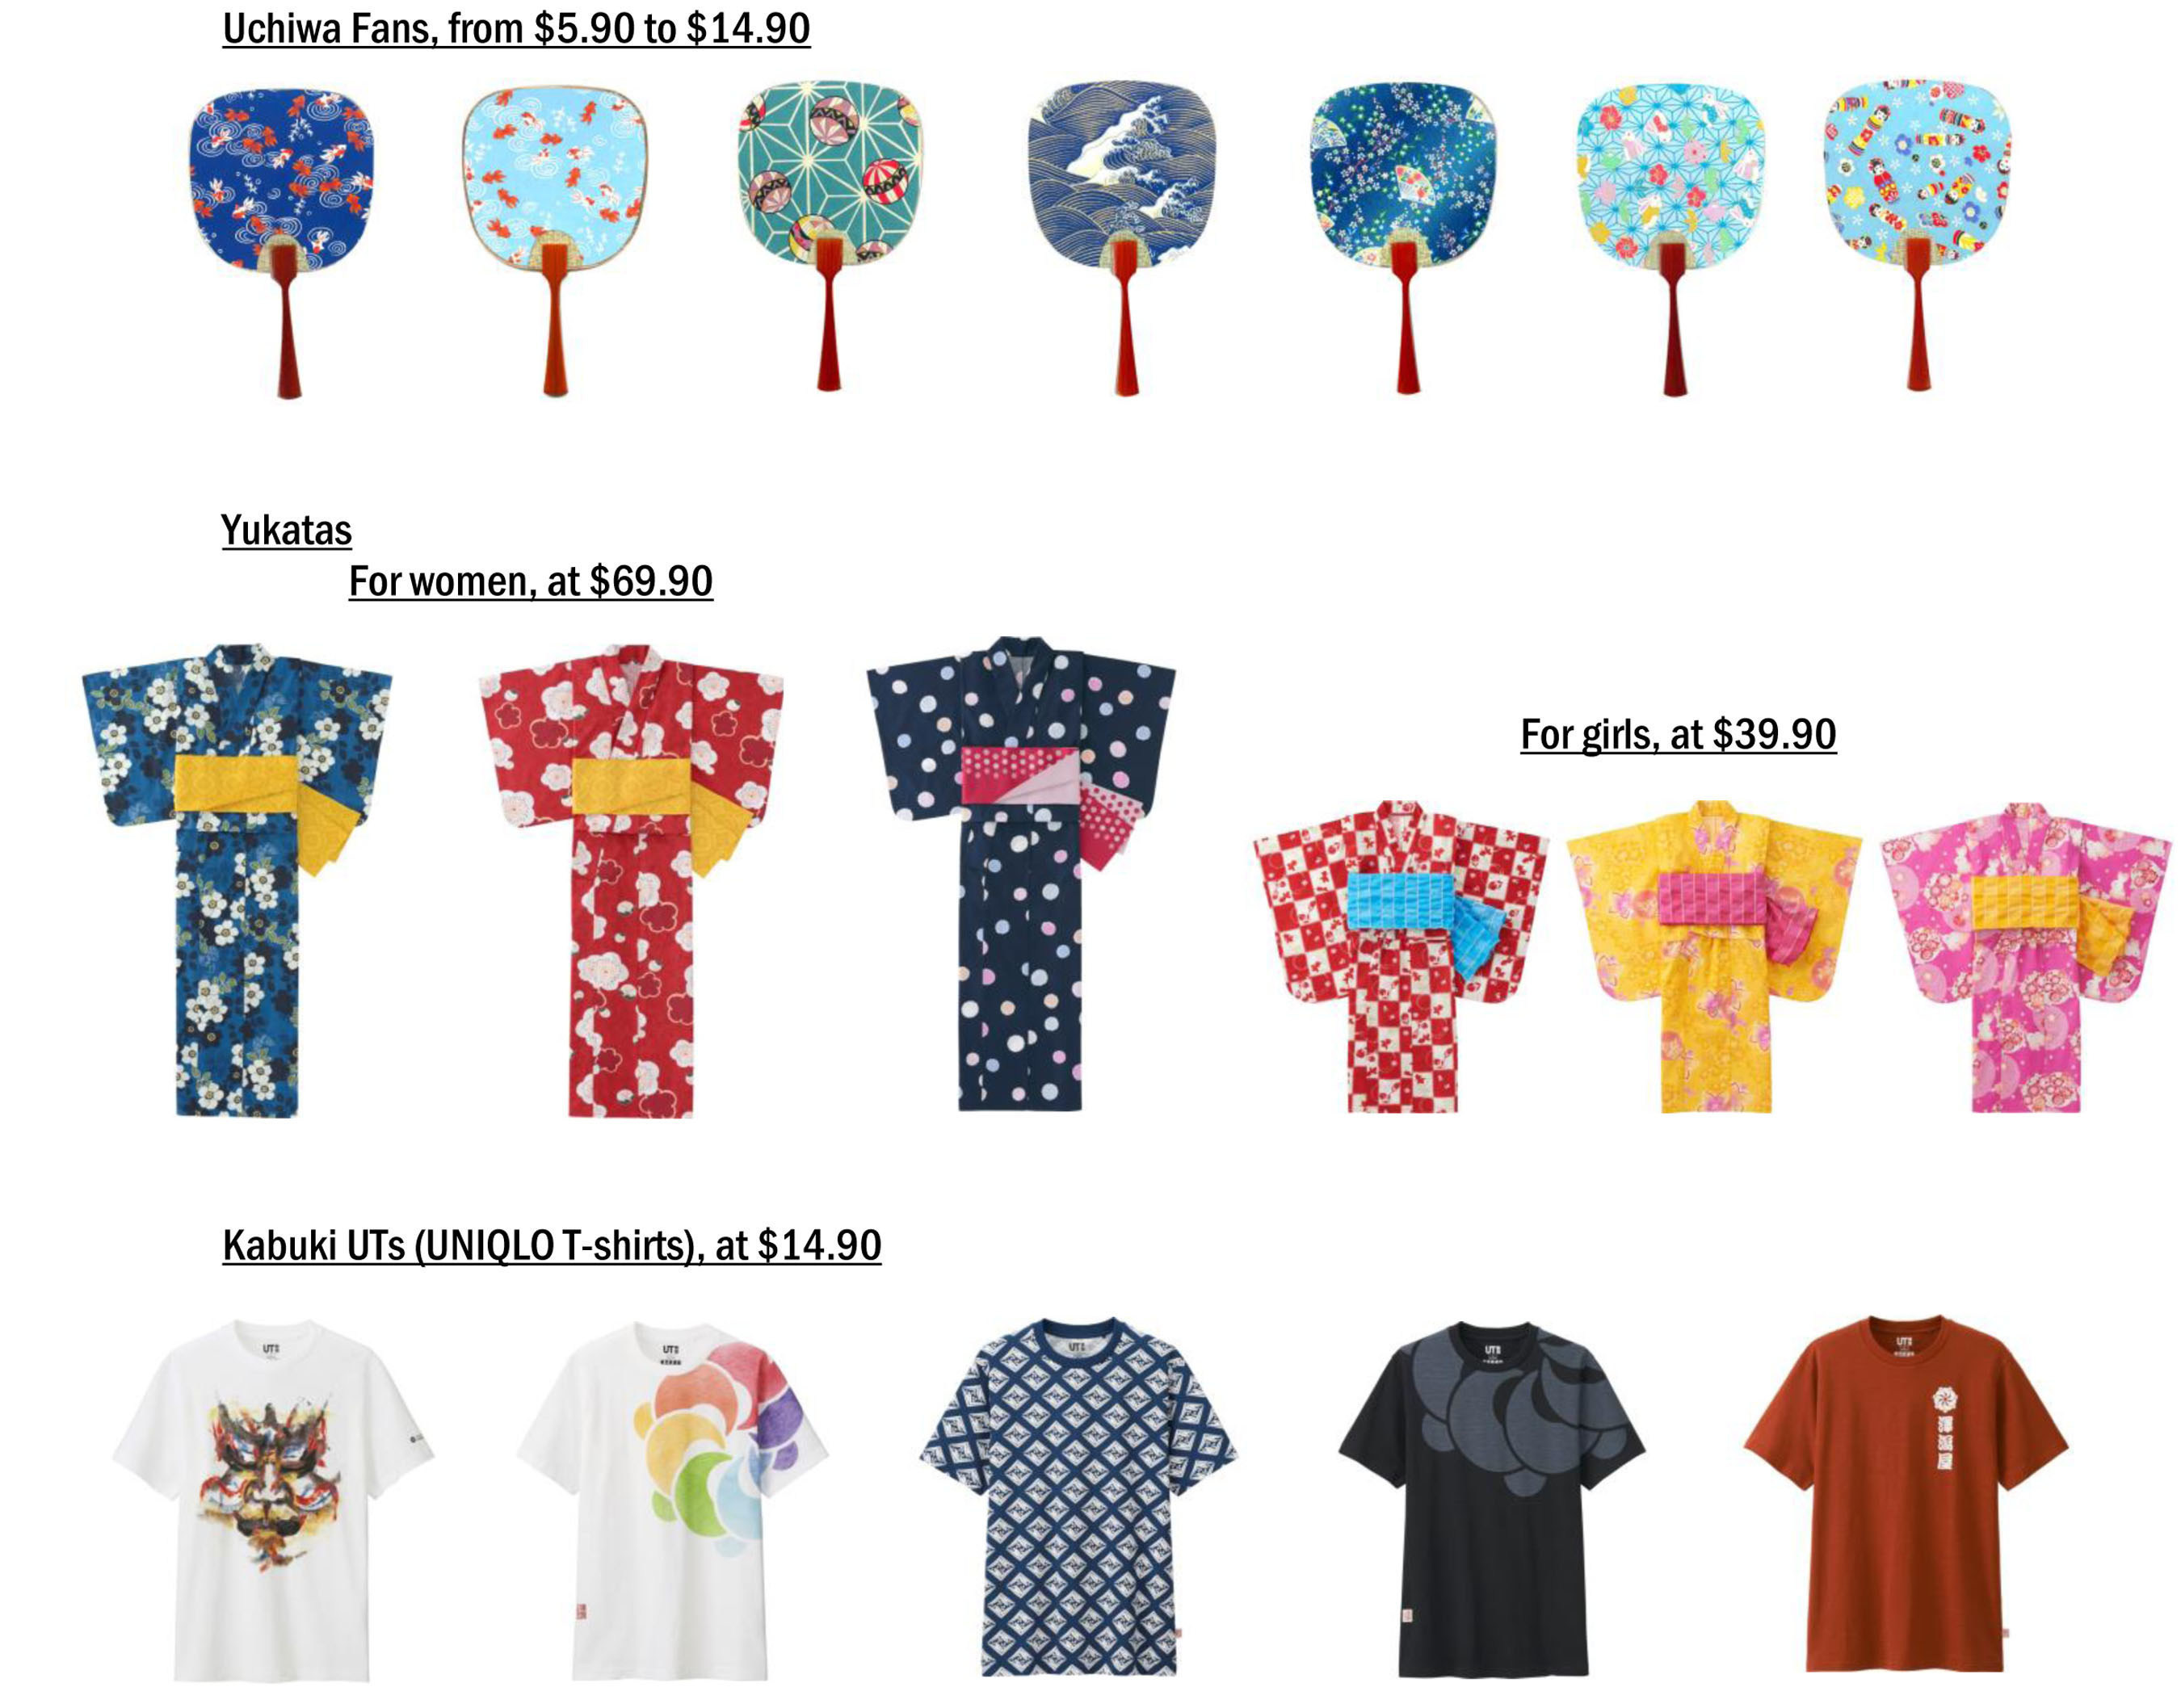 """Exclusive Japanese """"omiyage"""" (souvenir) items are available for purchase, including silk folding fans, uchiwa fans, paper samurai costumes and Buddha boards. Themes from """"Kabuki,"""" a classical performing art in Japan, are featured on UTs, and Yukatas - light cotton kimonos - are available for women and girls."""